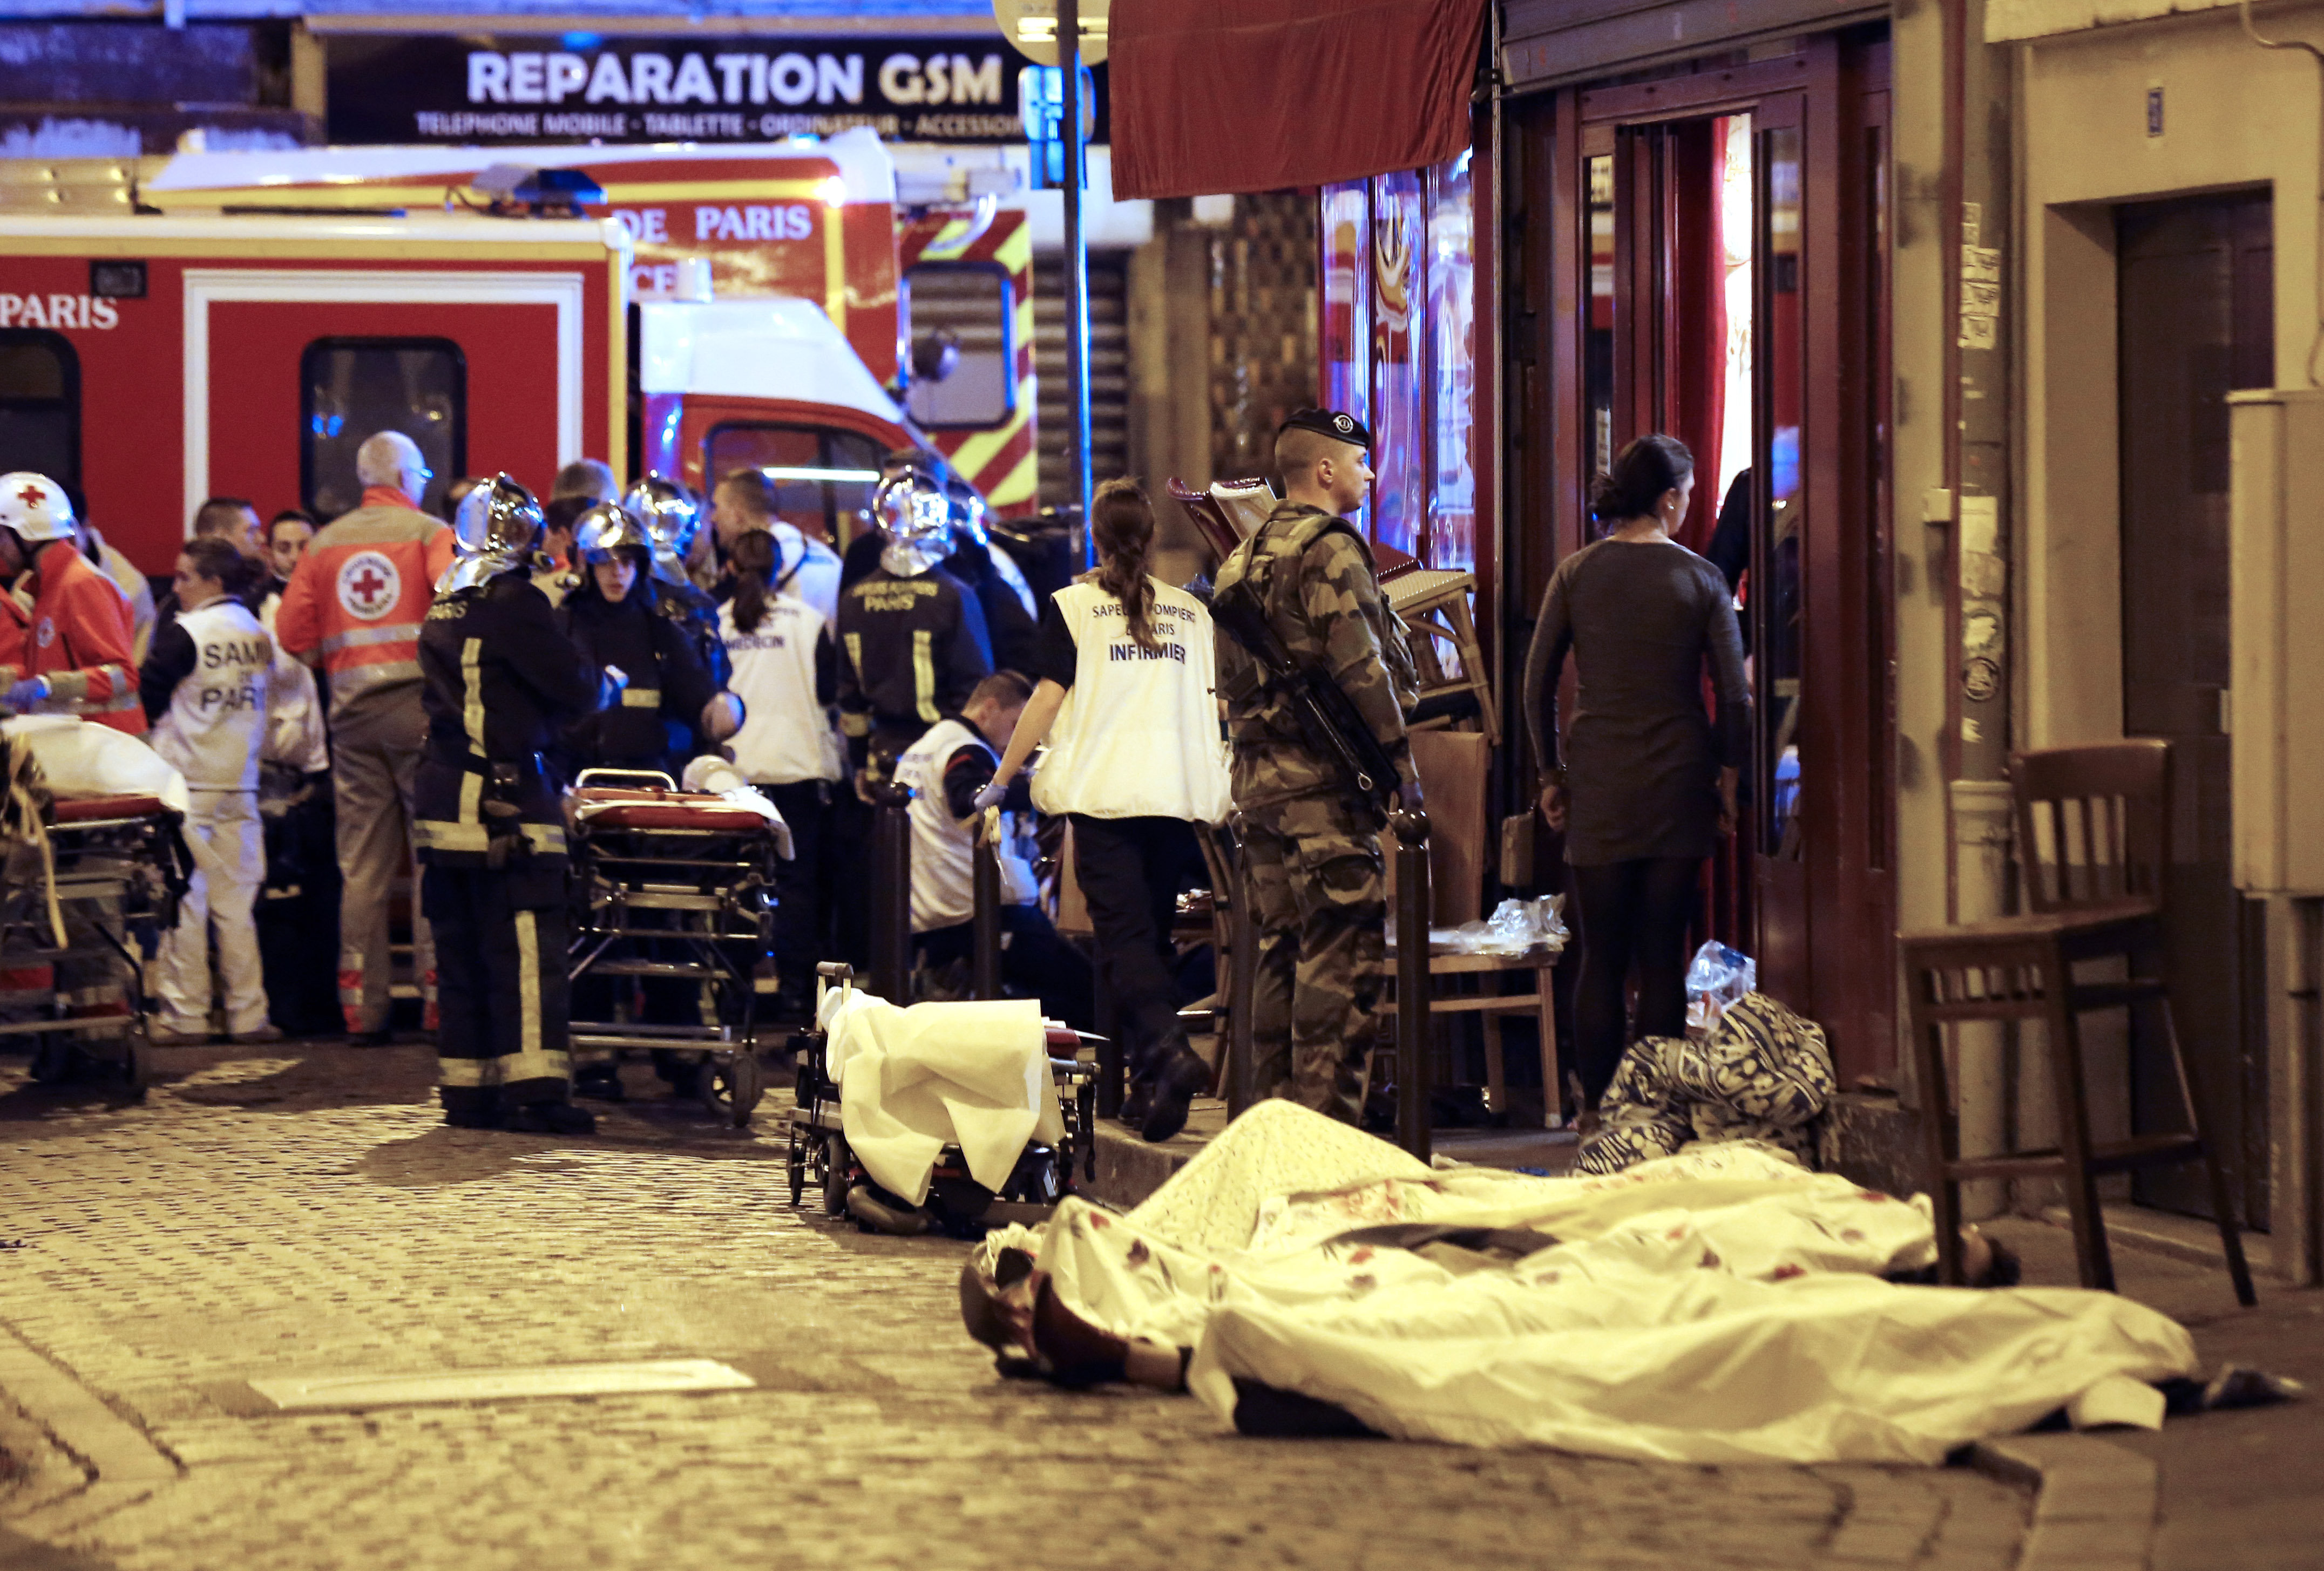 A soldier stands by victims in the10th district of Paris, Friday, Nov. 13, 2015.